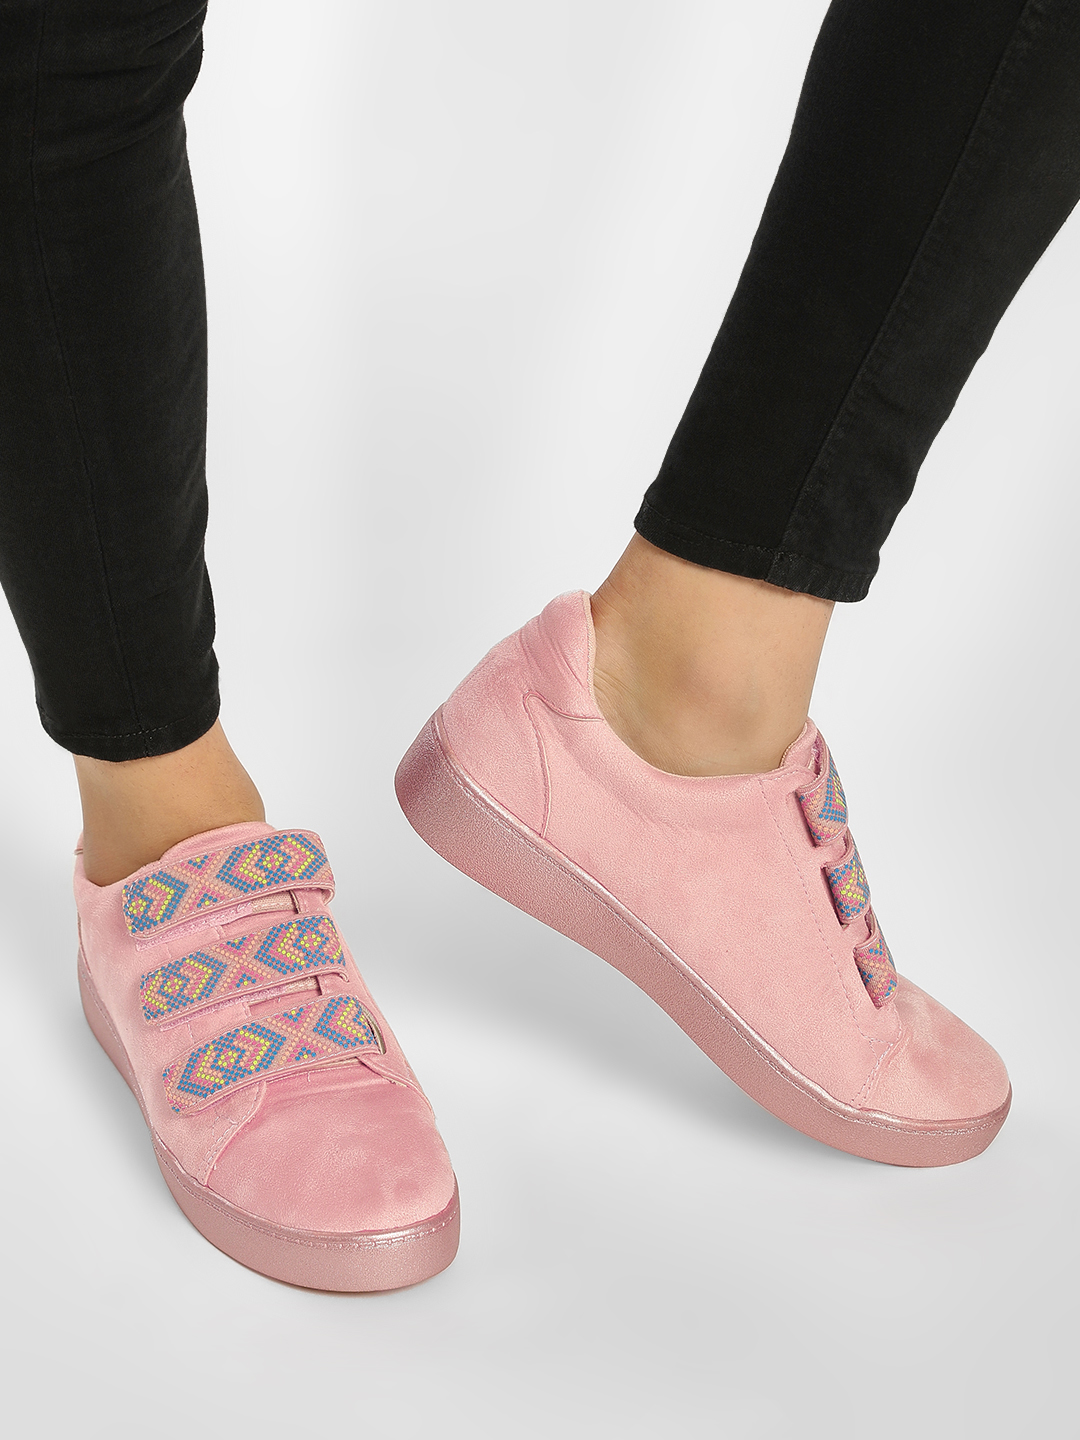 My Foot Couture Pink Embroidered Strap Glossy Finish Trainers 1